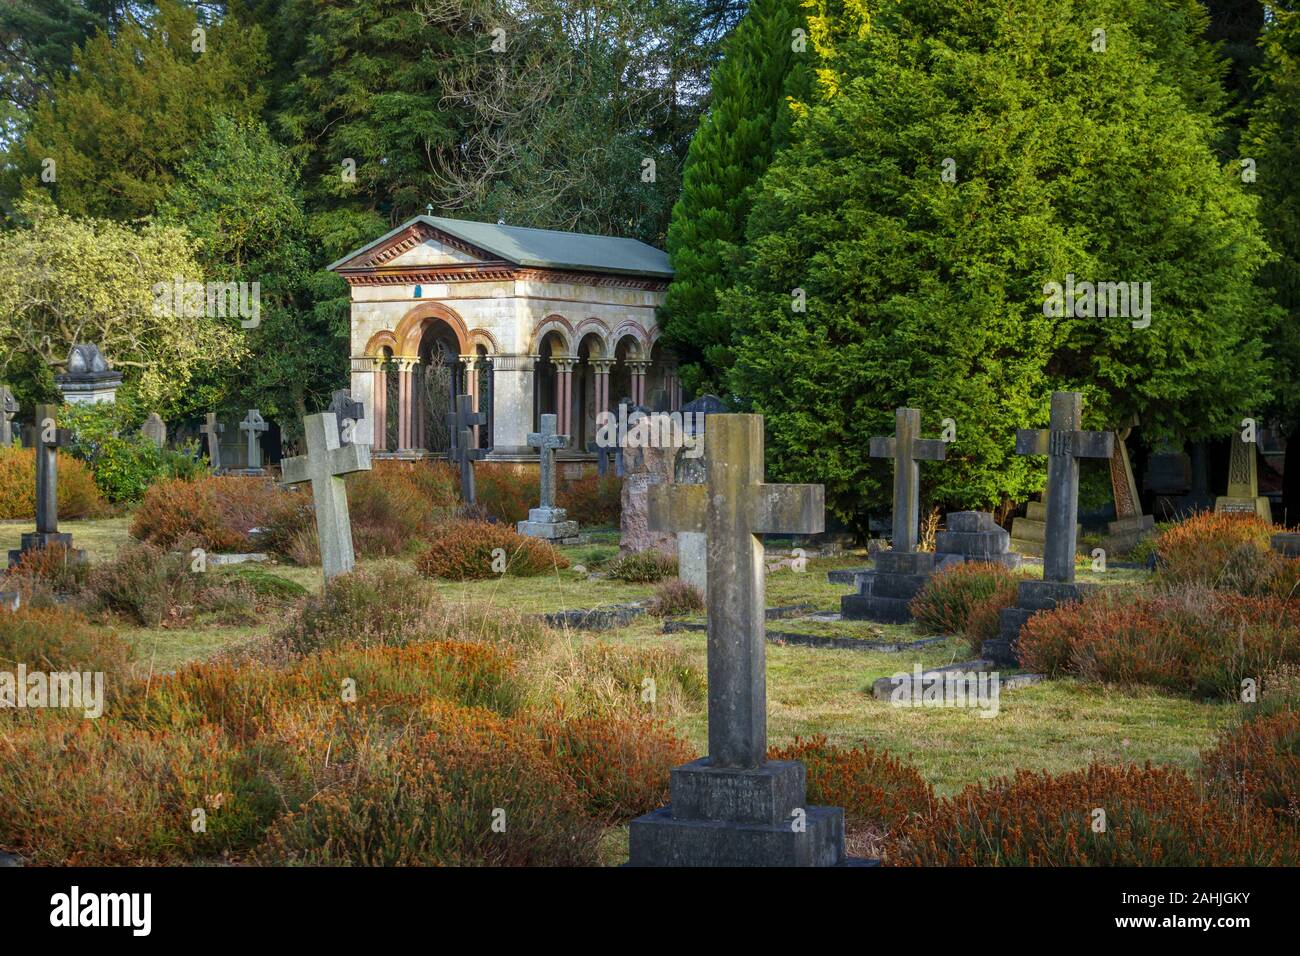 Mausoleum of Sir William Richard Drake in South Cemetery, Brookwood Cemetery, Cemetery Pales, Brookwood, near Woking, Surrey, southeast England, UK Stock Photo